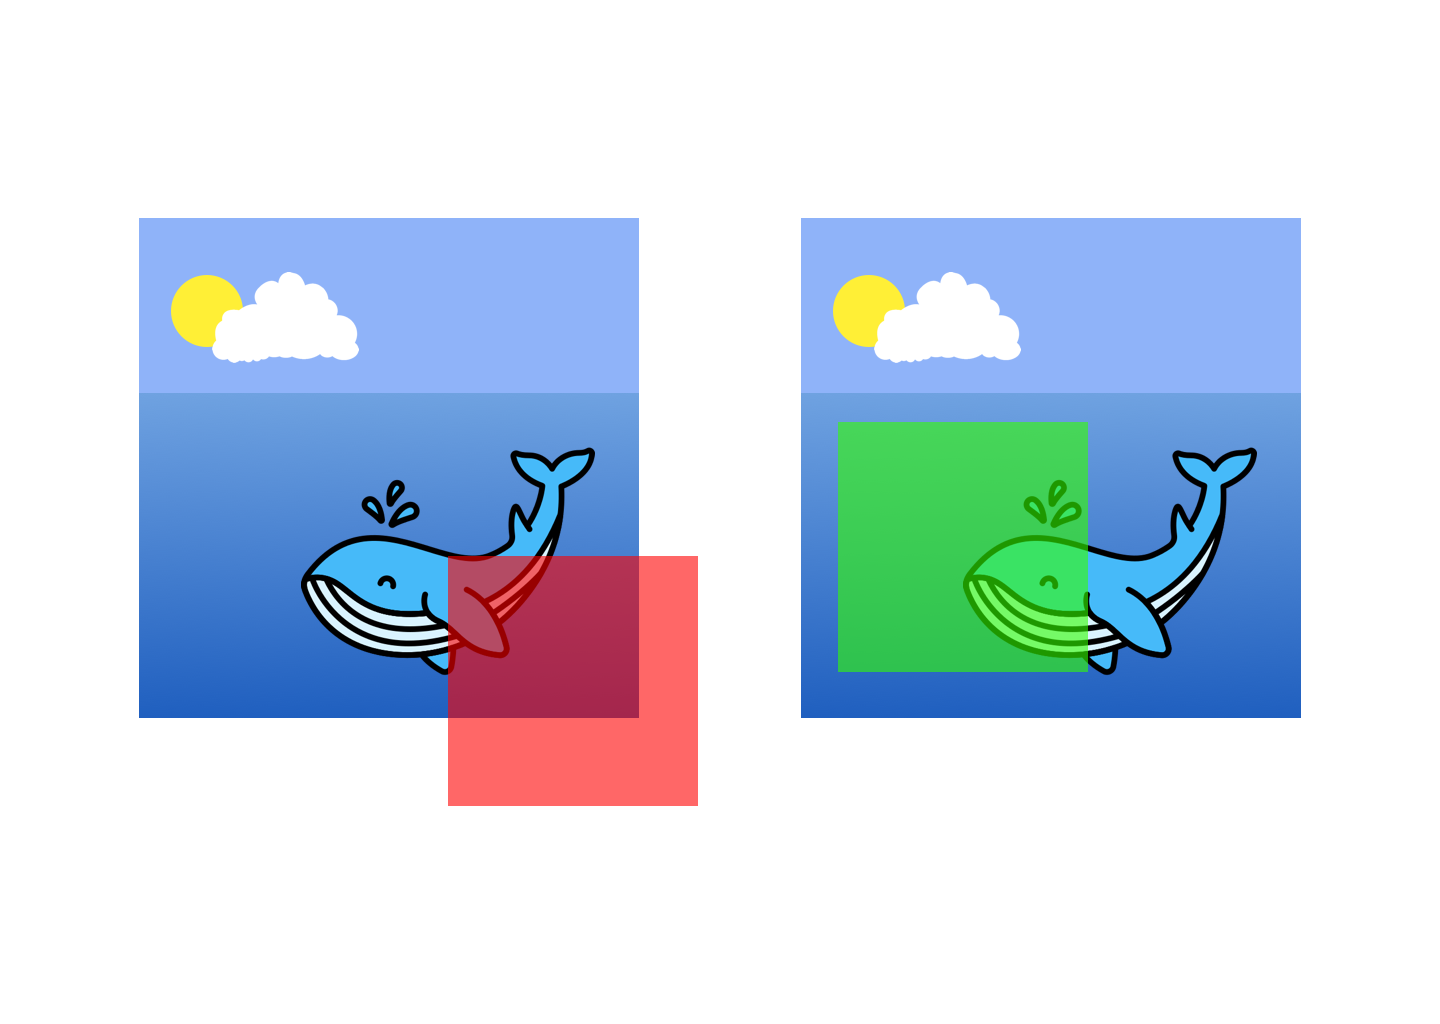 Visualization of invalid and valid annotations (red and green square over an illustrated whale)